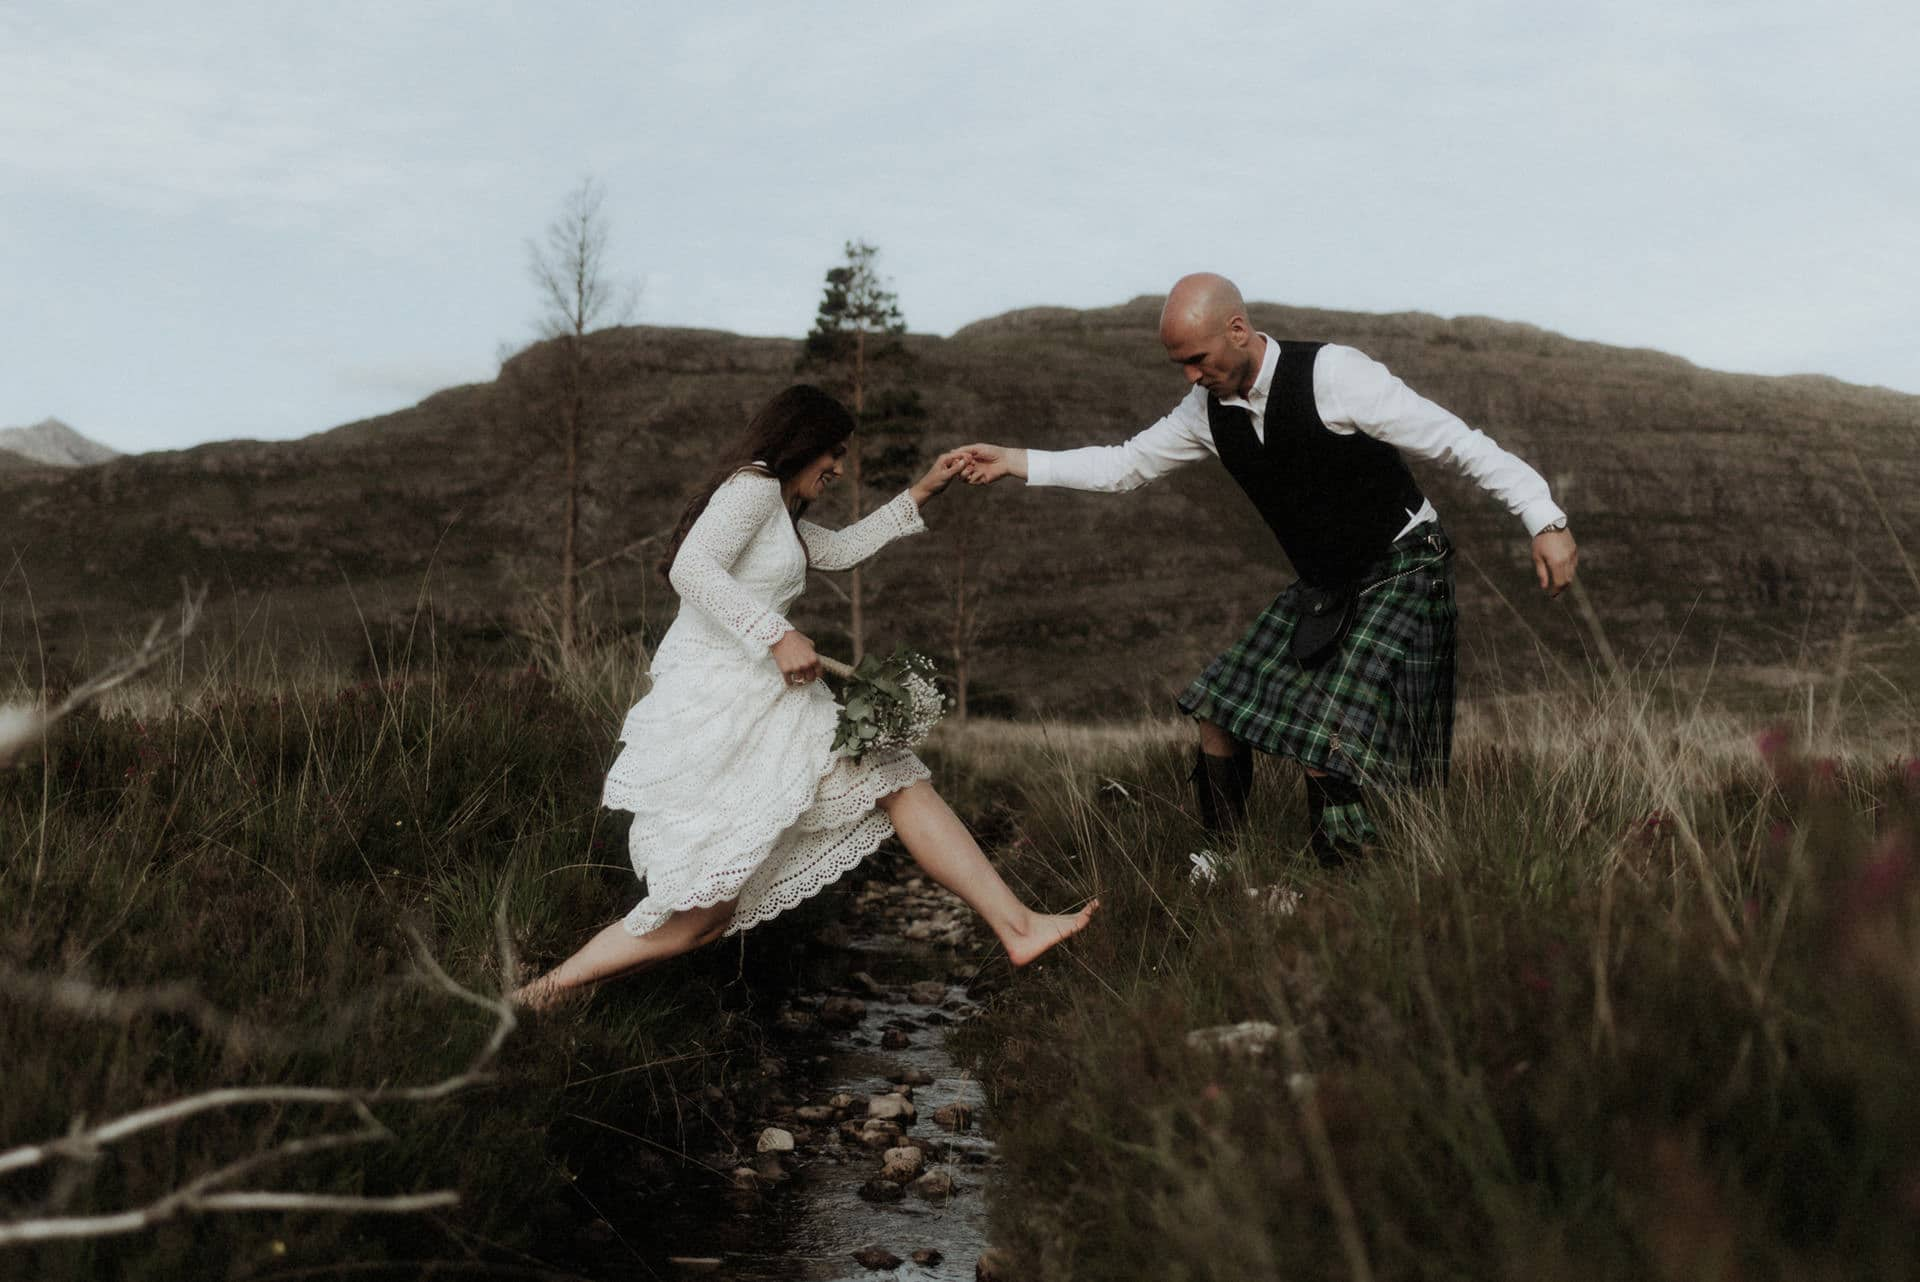 Couple jumping a stream during their elope in scotland